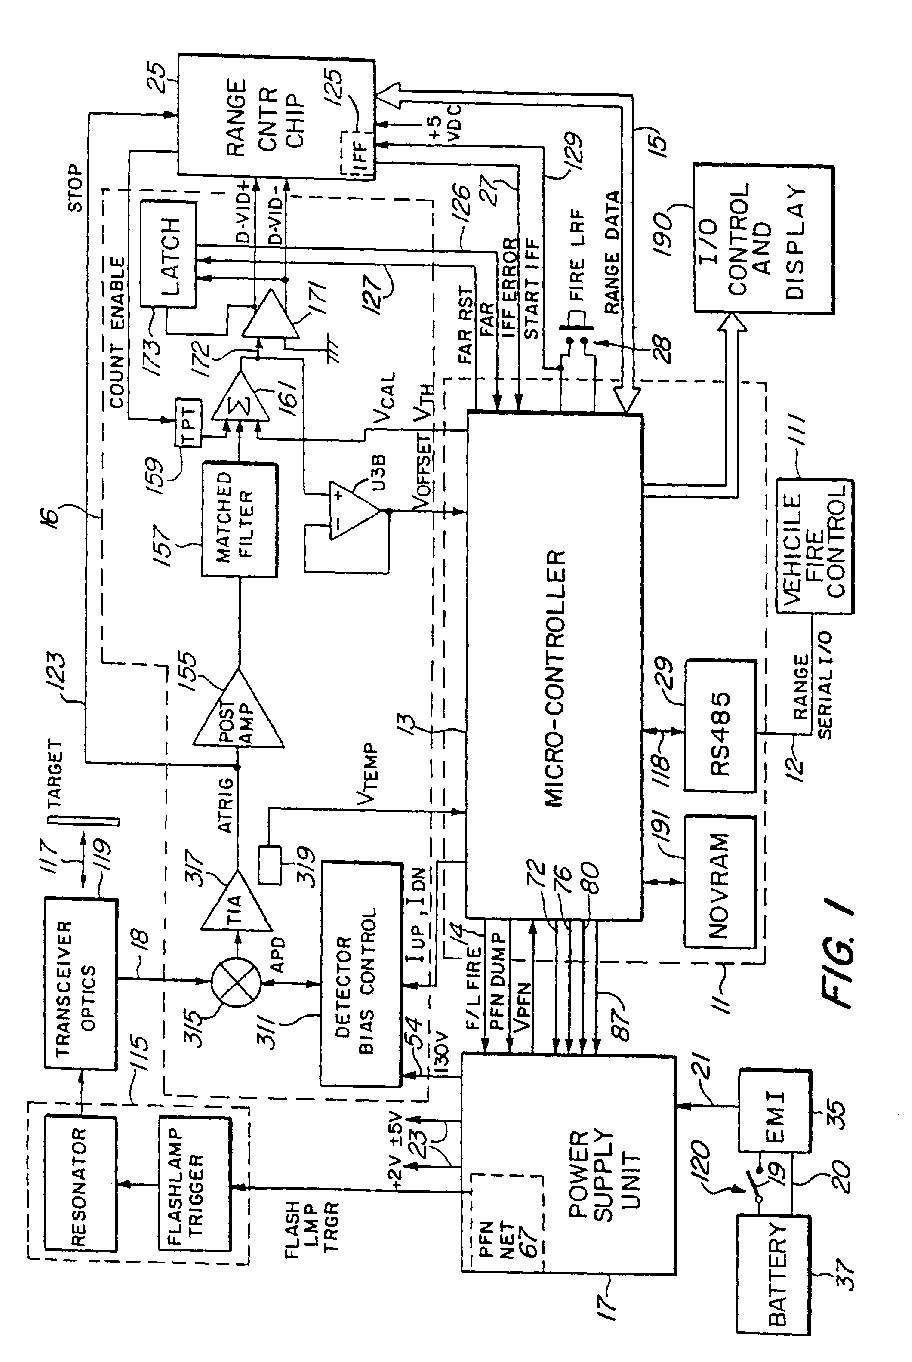 Laser Range Finder Receiver Patent 0757257 Transimpedance Amplifier Detector Circuit With Limited Q The Microcontroller 13 Further Monitors Photodetector Temperature Via A Sensor 319 And Can Perform Apd Bias Adjustment